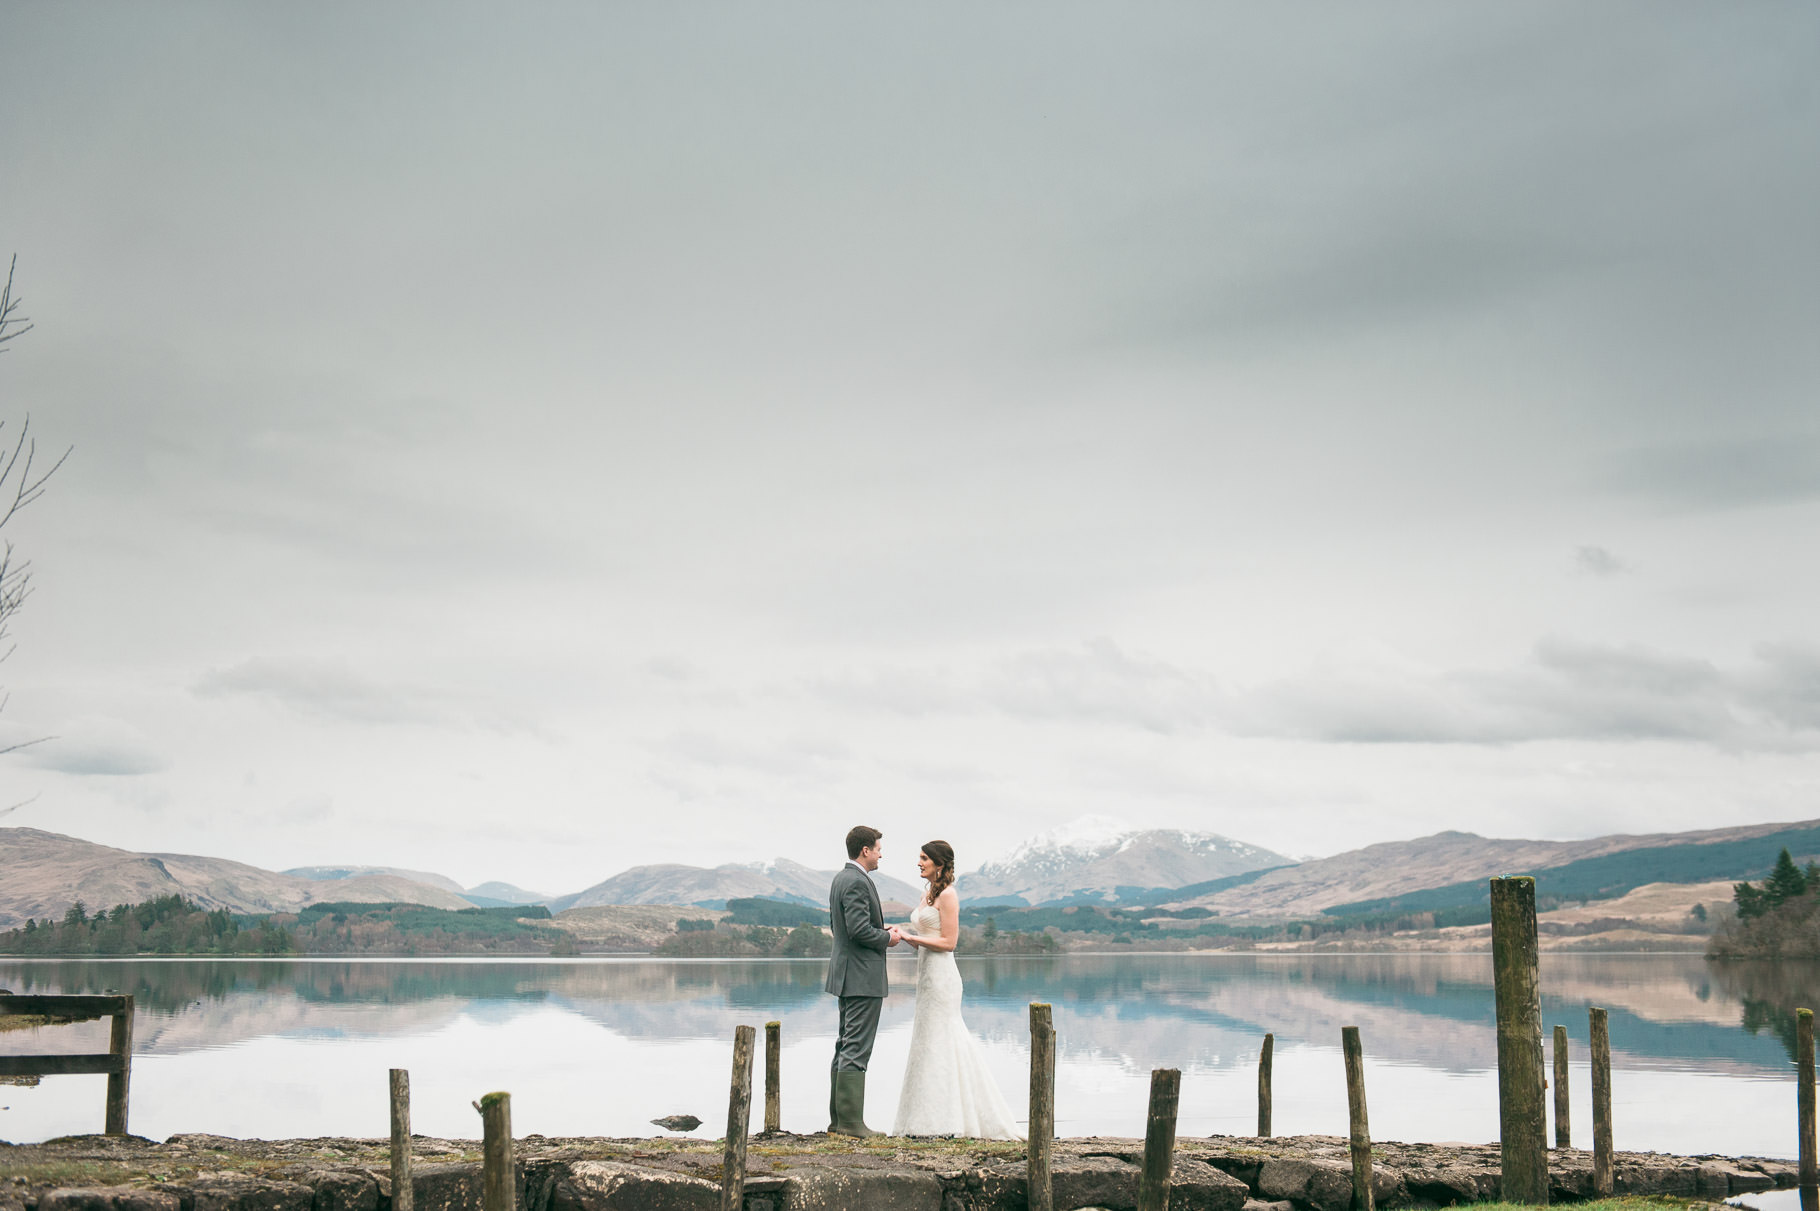 Scottish landscape at Loch Awe with bride and groom and mountains